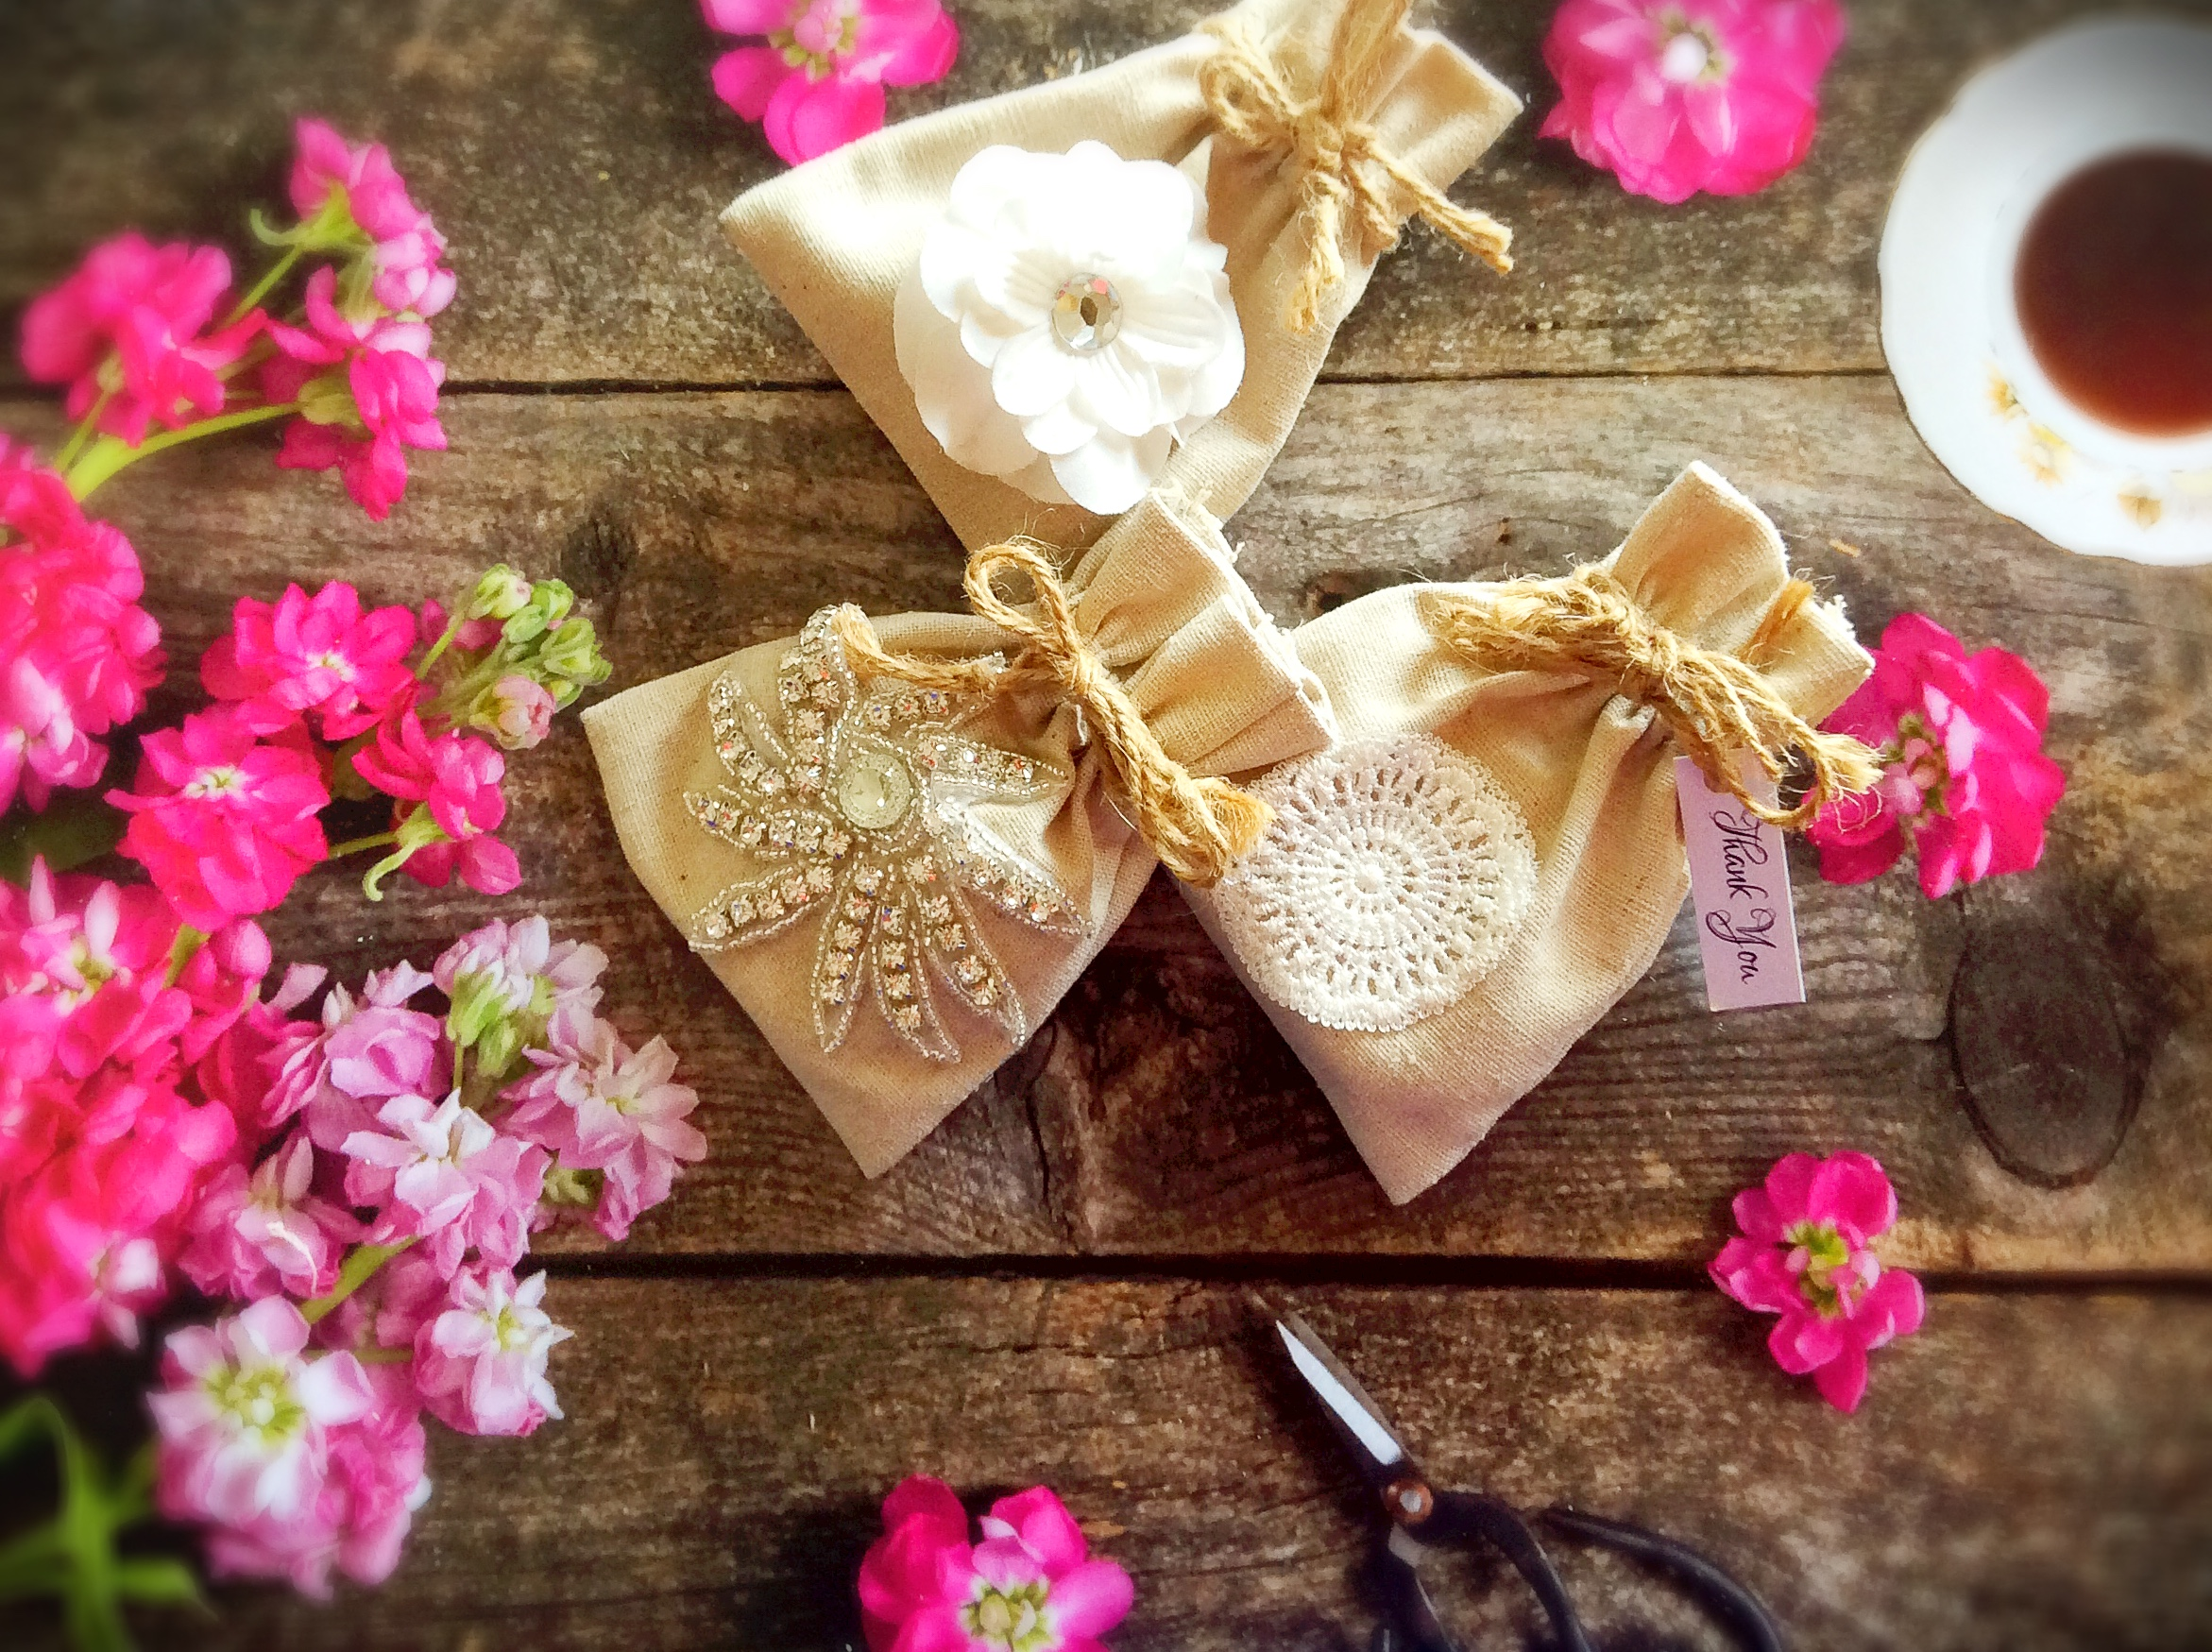 wedding-or-event-canvas-bag-with-embellishment-and-1-or-2-mini-goats-milk-soaps.jpg